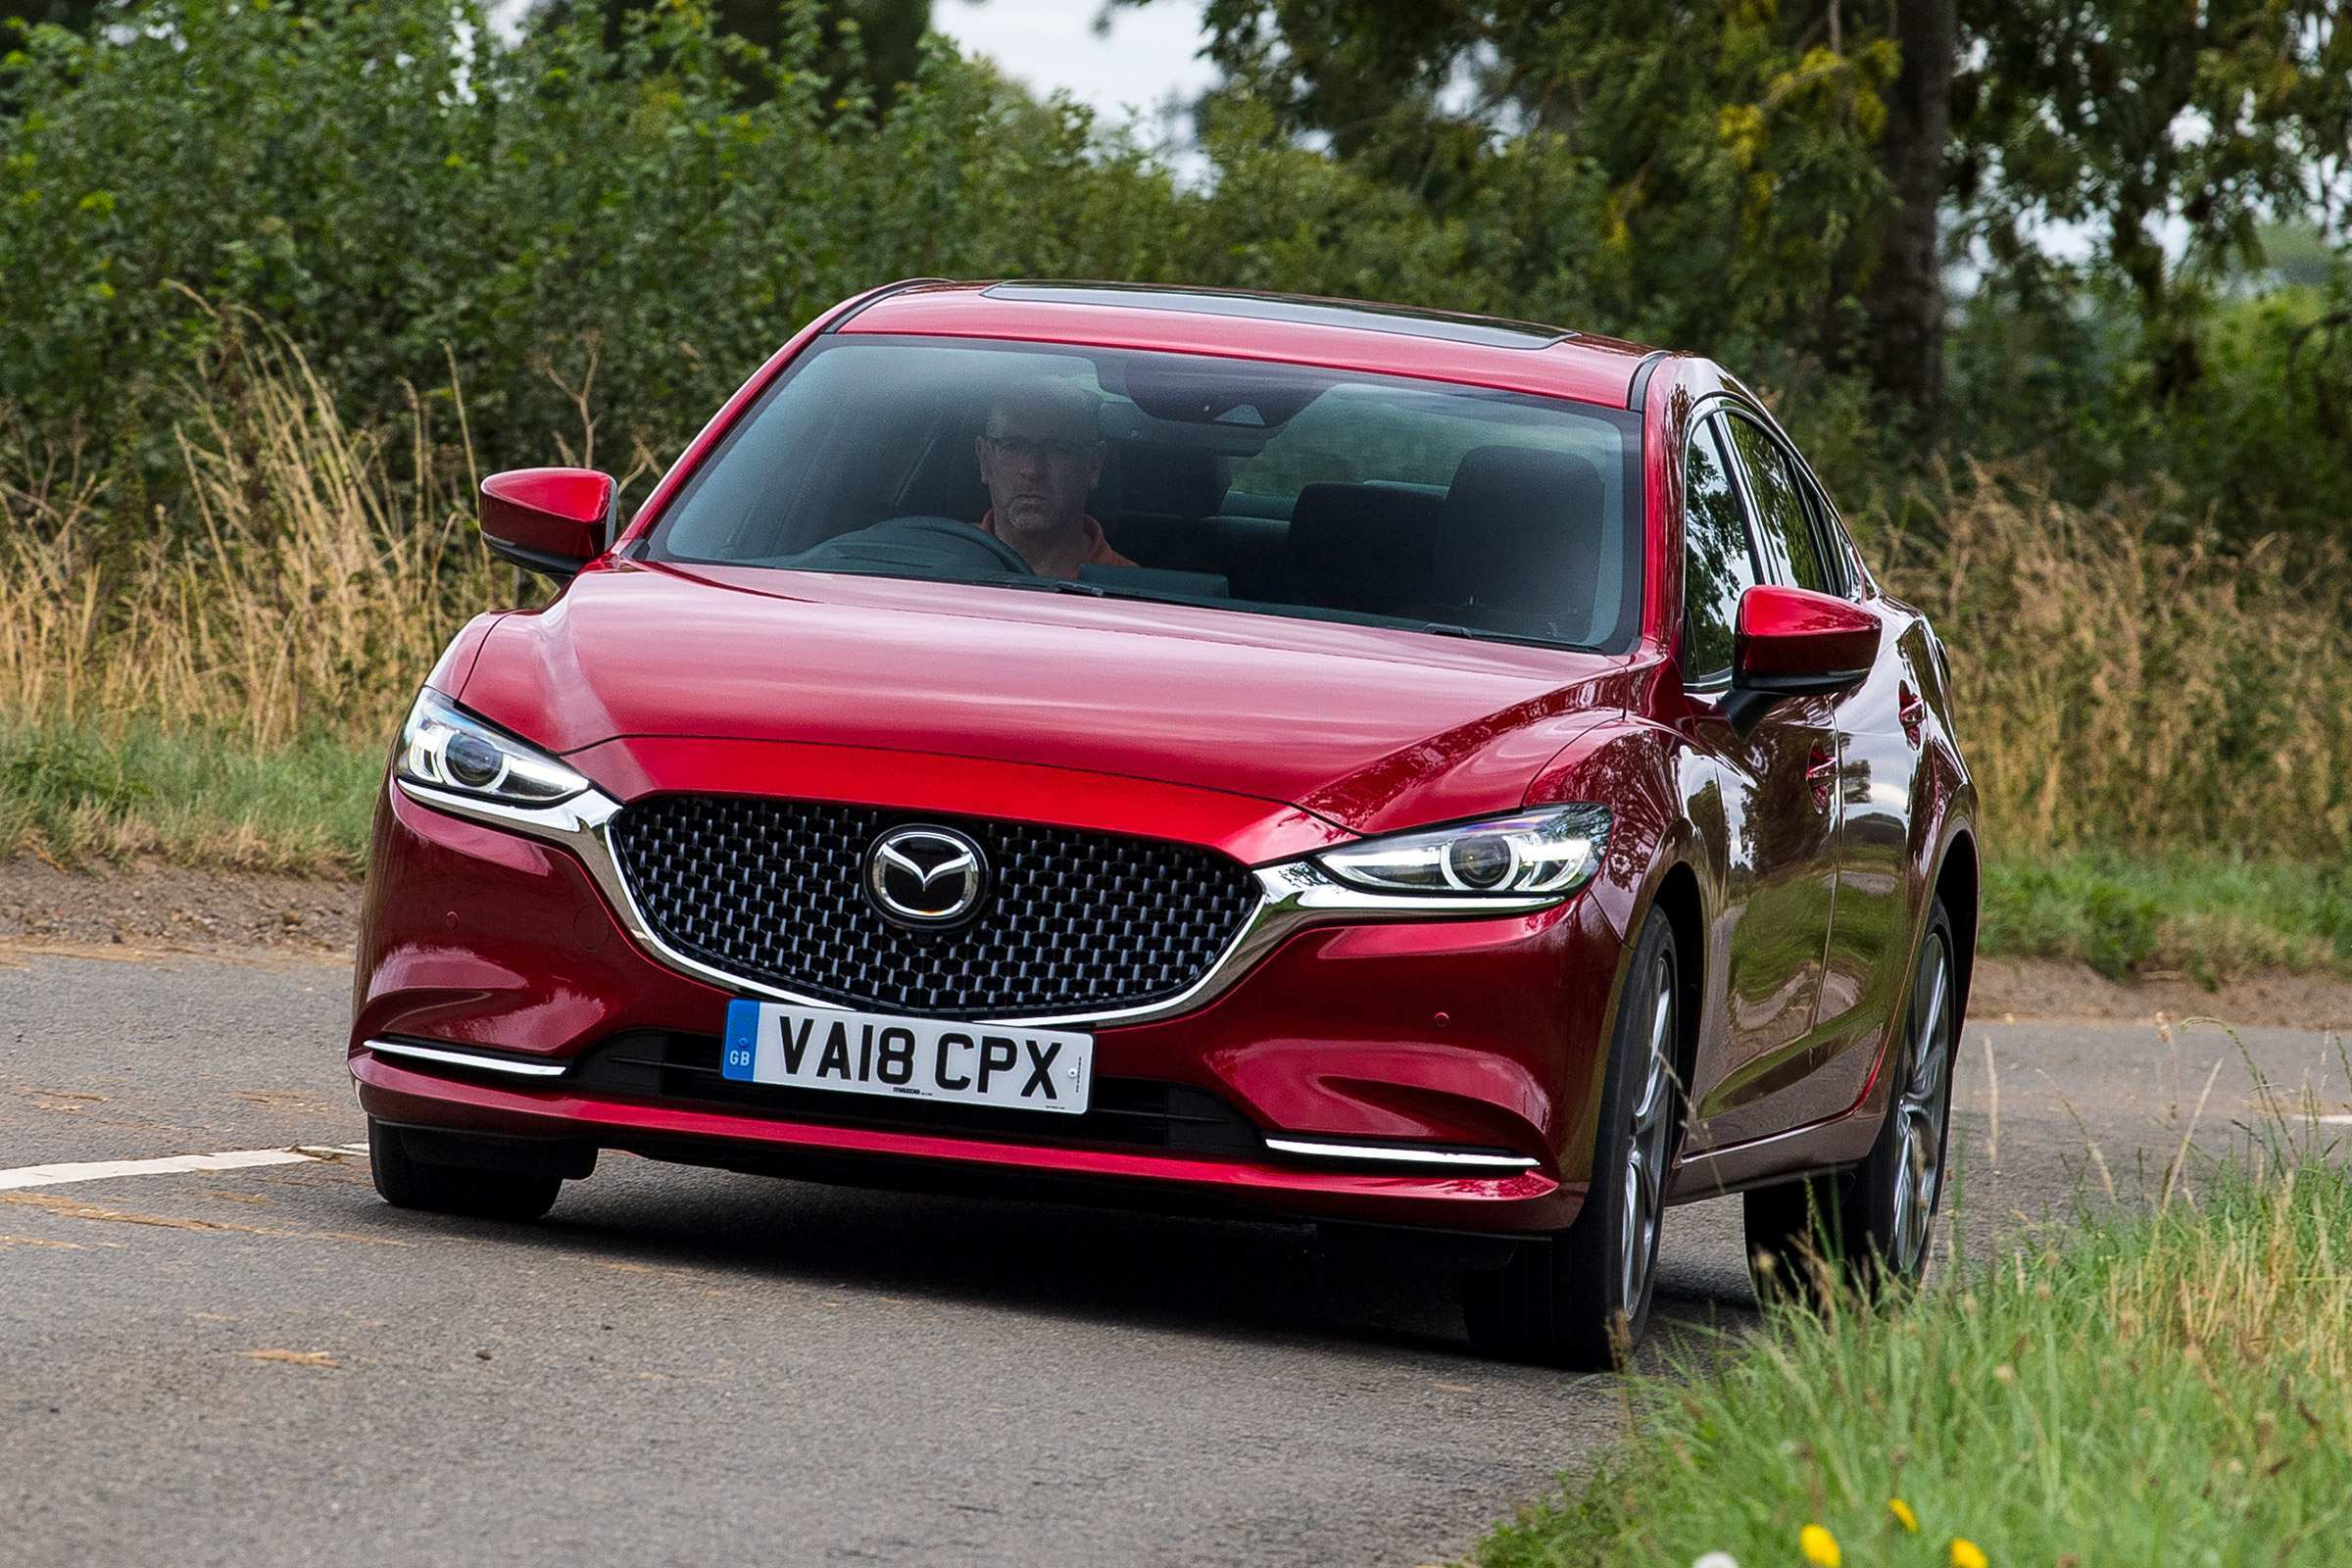 57 Concept of Mazda 2019 Vision Review History for Mazda 2019 Vision Review